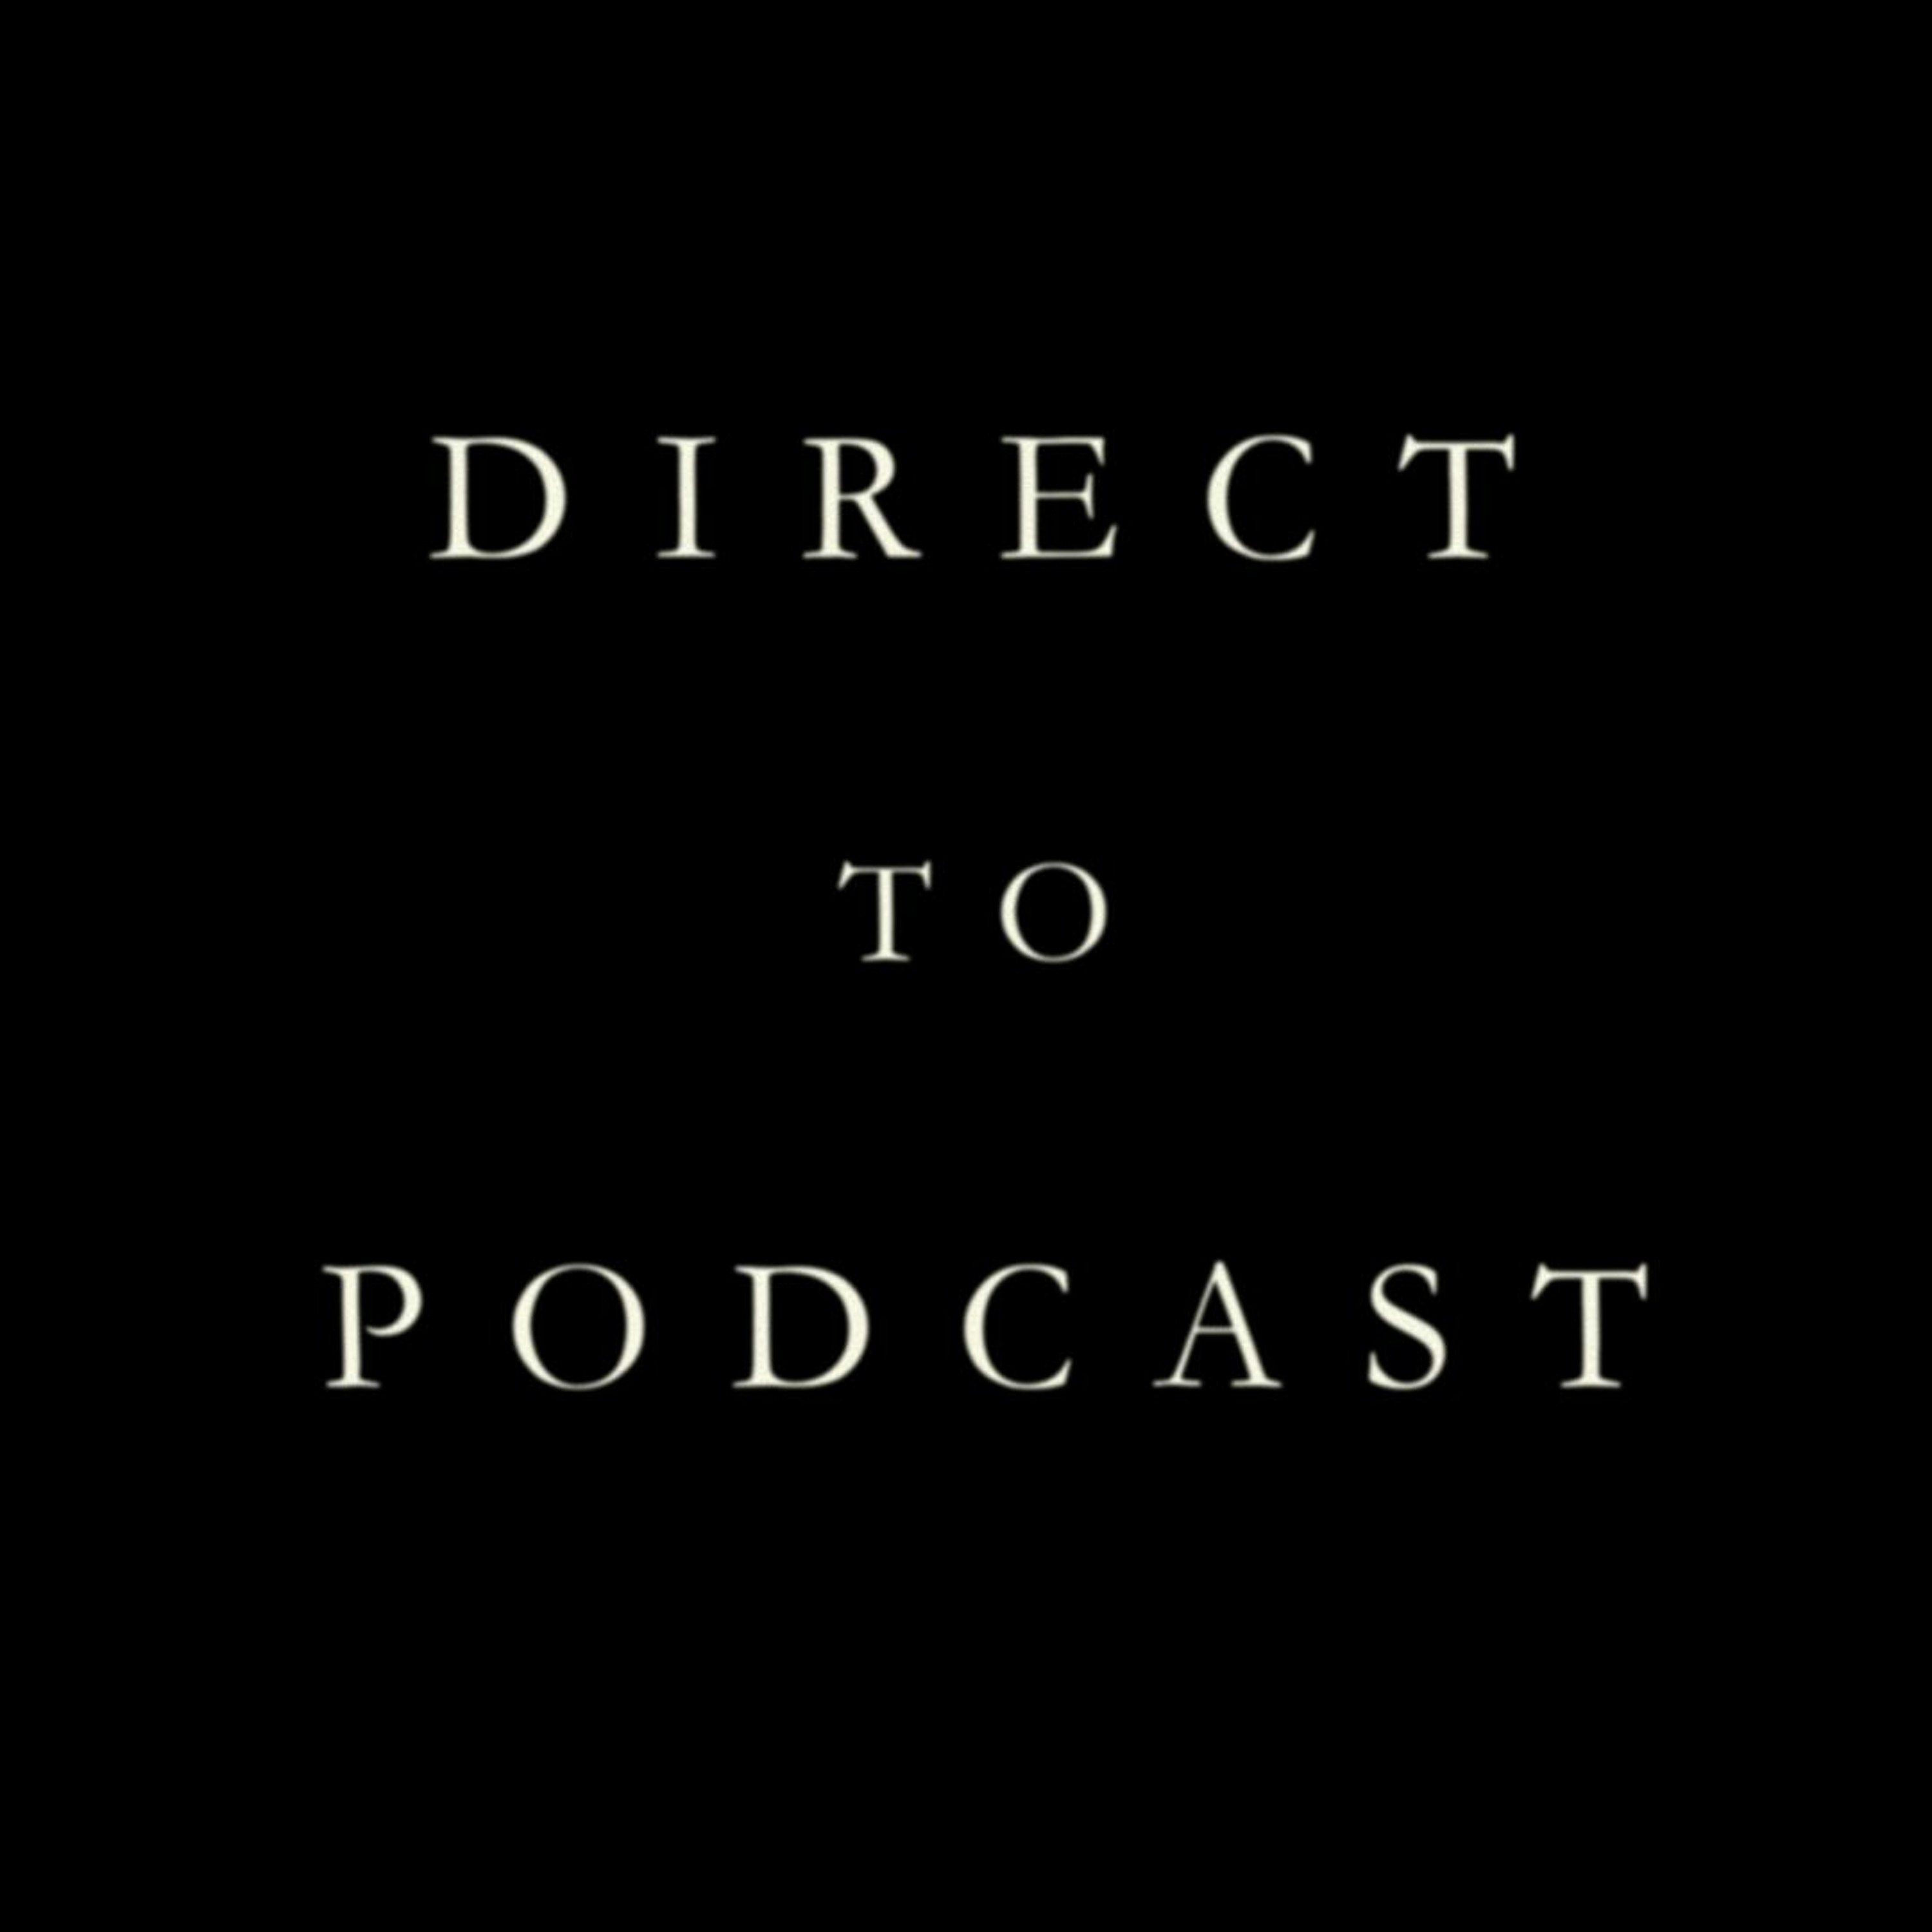 Direct to Podcast